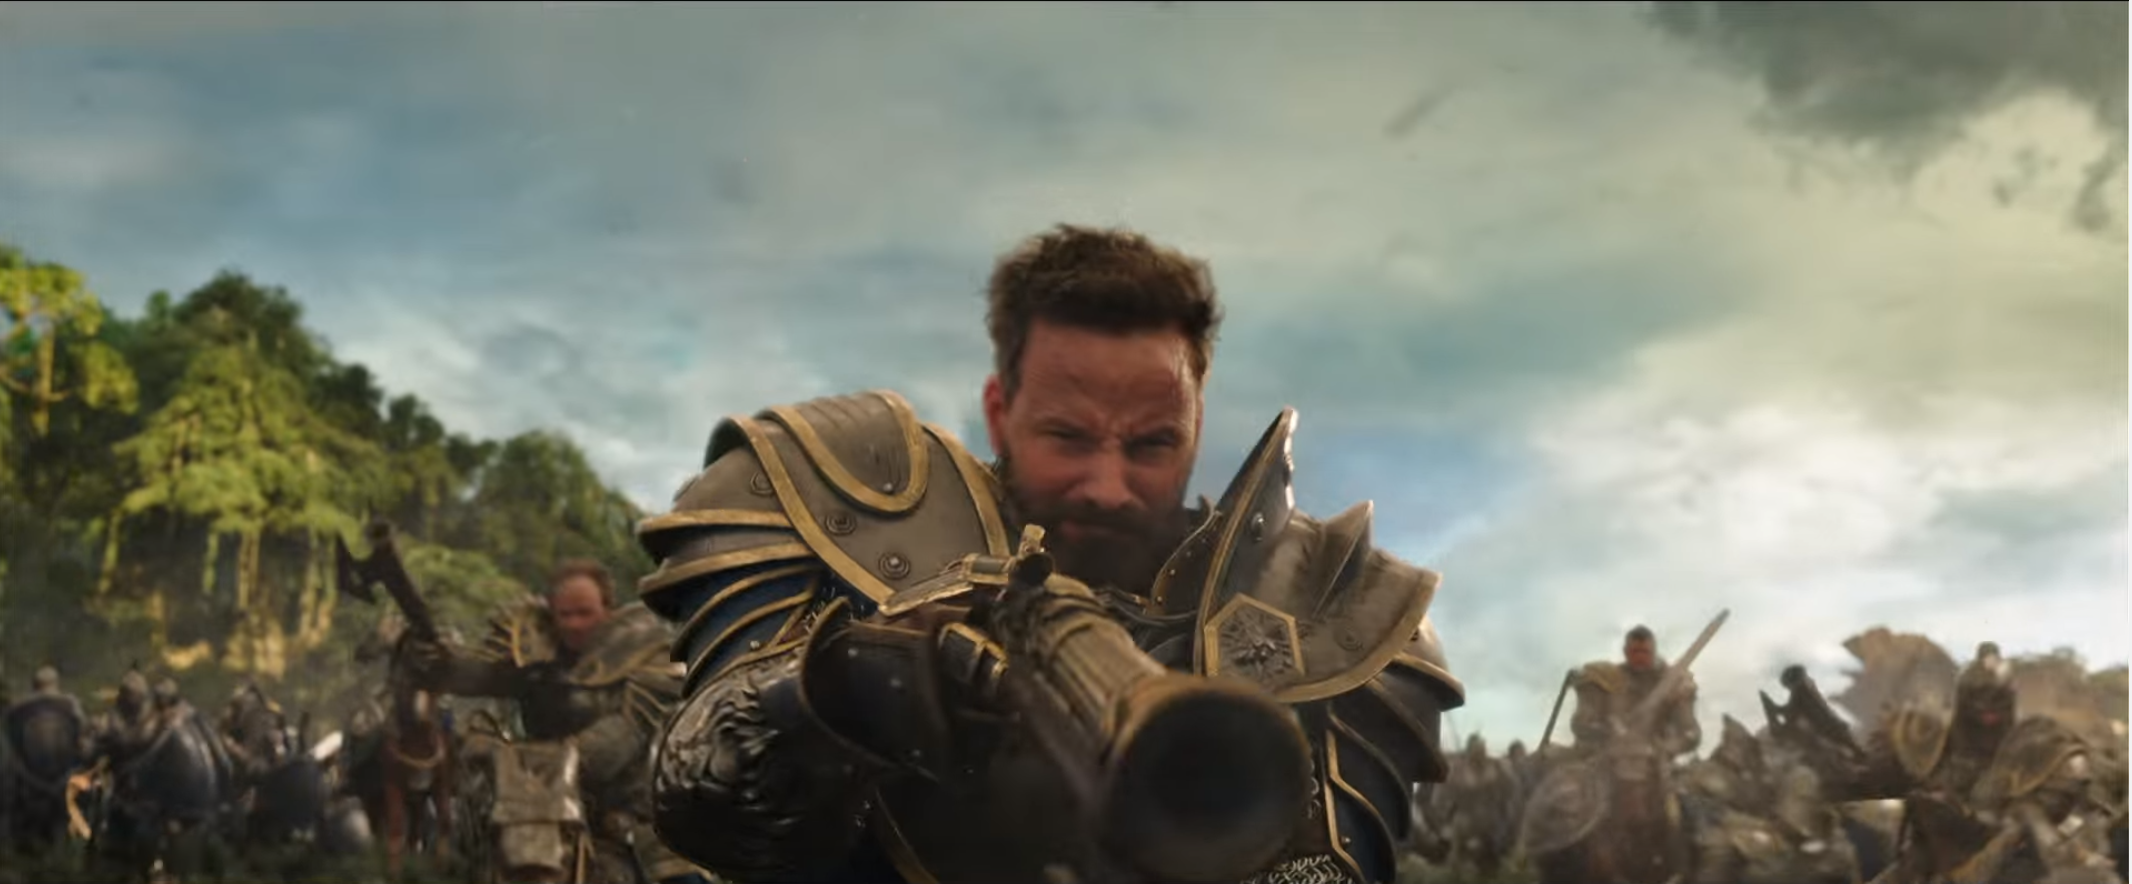 The New Warcraft Teaser Trailer Has Arrived